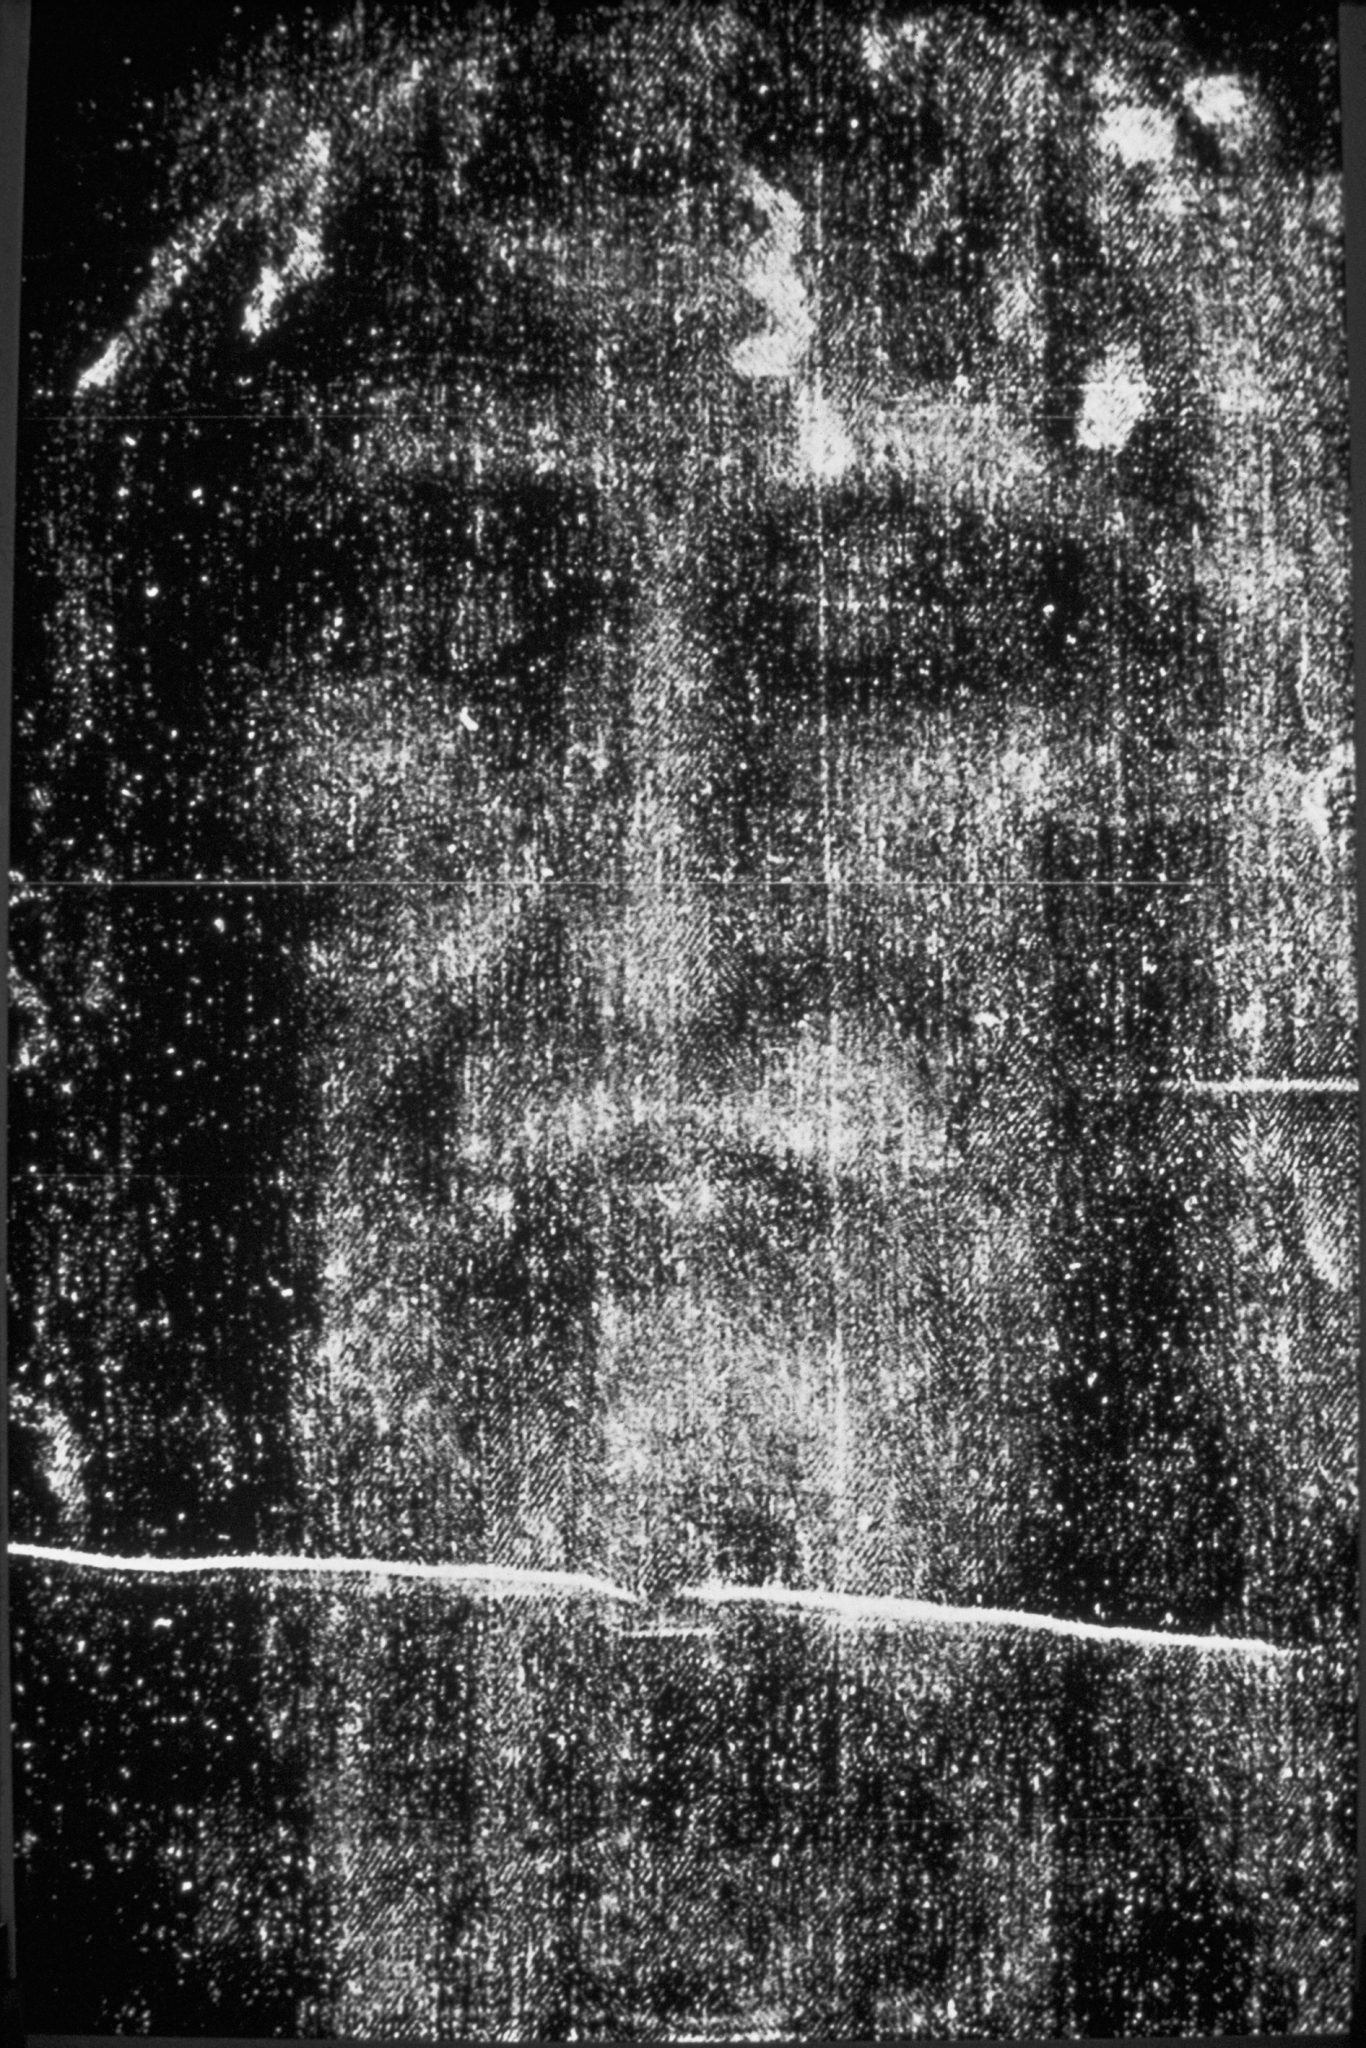 k 5031 shroud of turin - photo#33